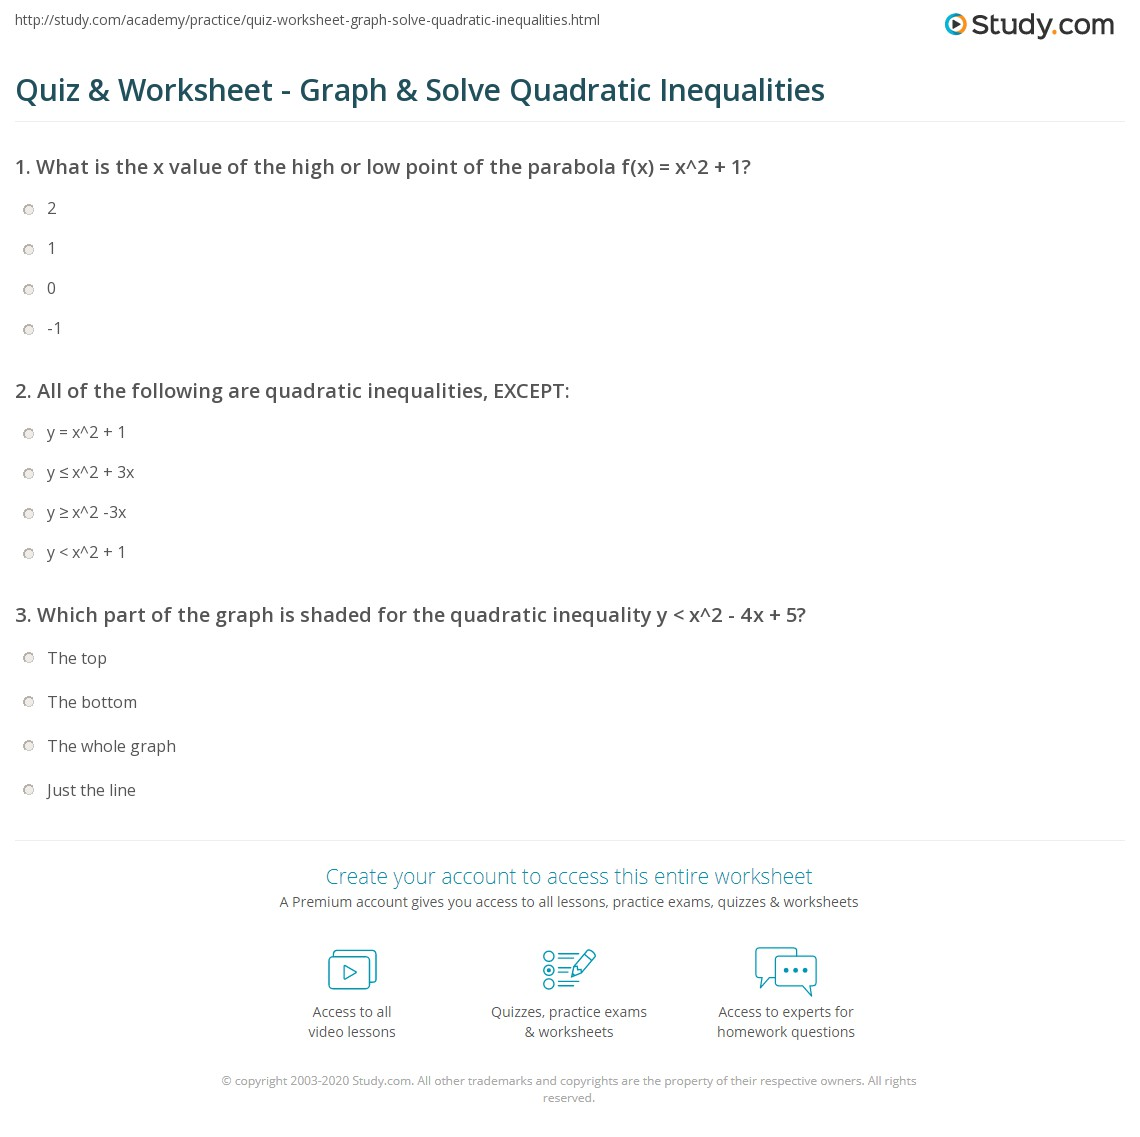 Quiz & Worksheet - Graph & Solve Quadratic Inequalities | Study.com